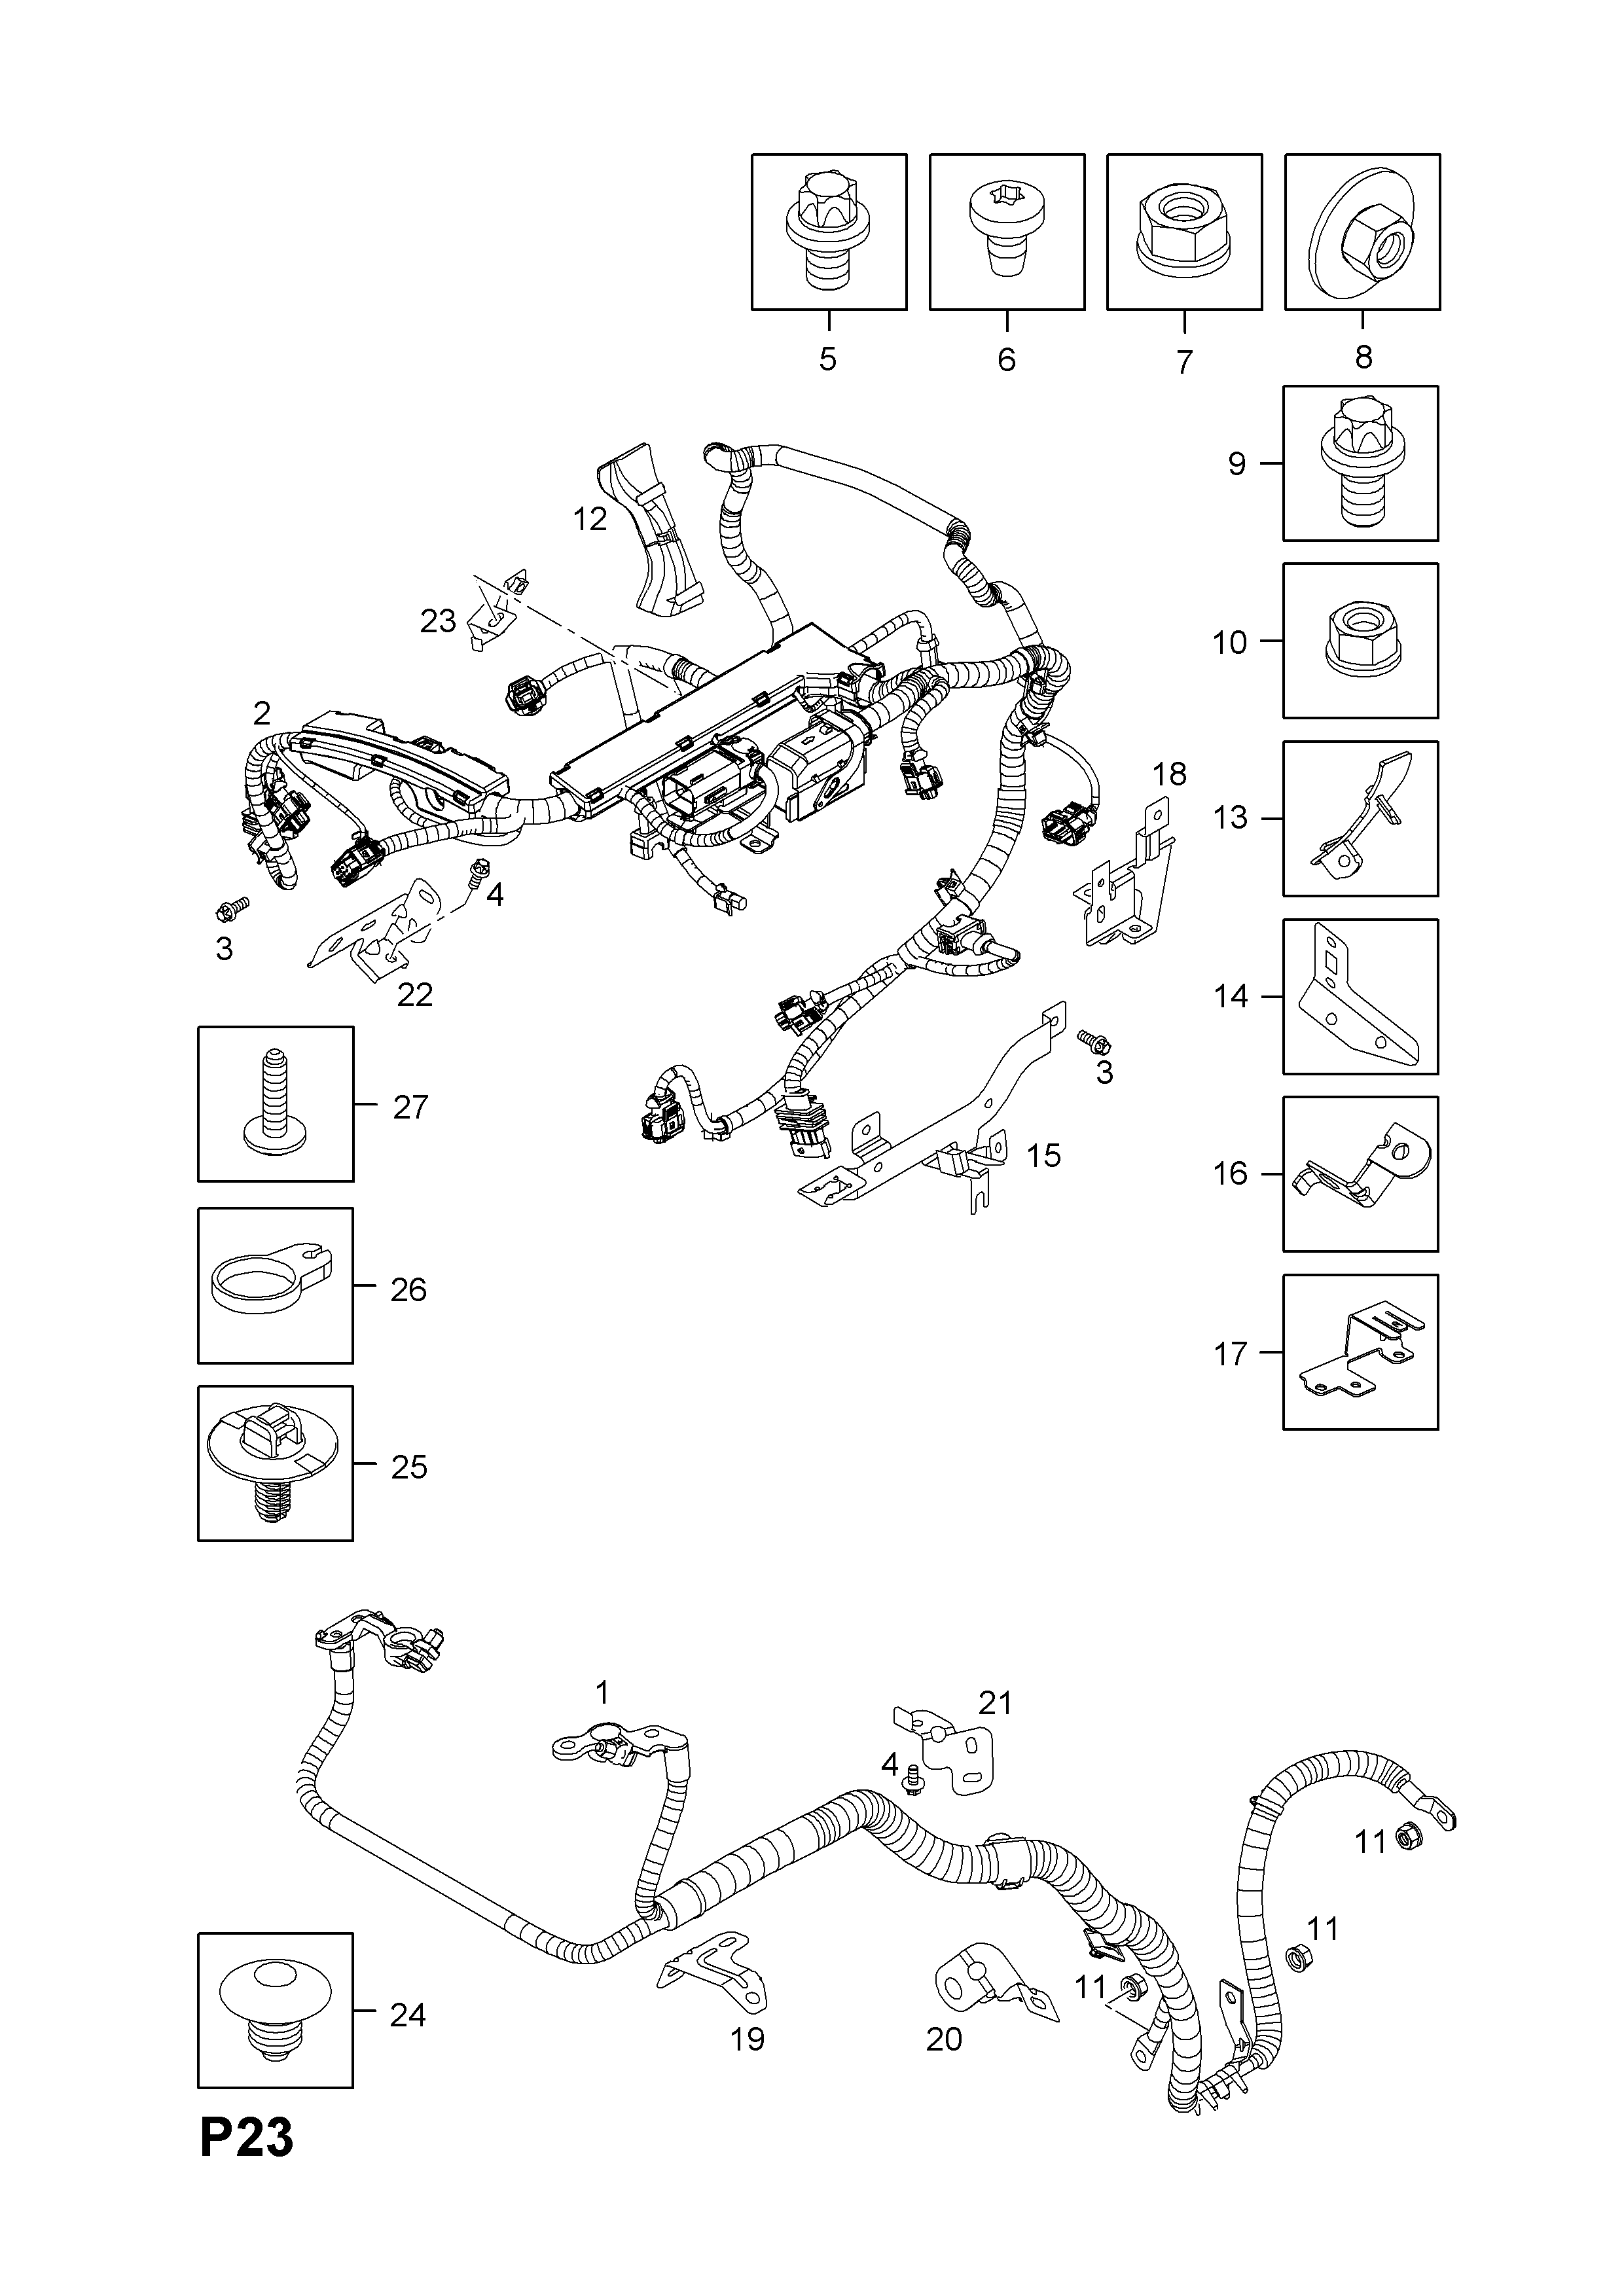 list of parts  model � opel corsa-d ( 2007 - ) � p electrical � 9 wiring  harness